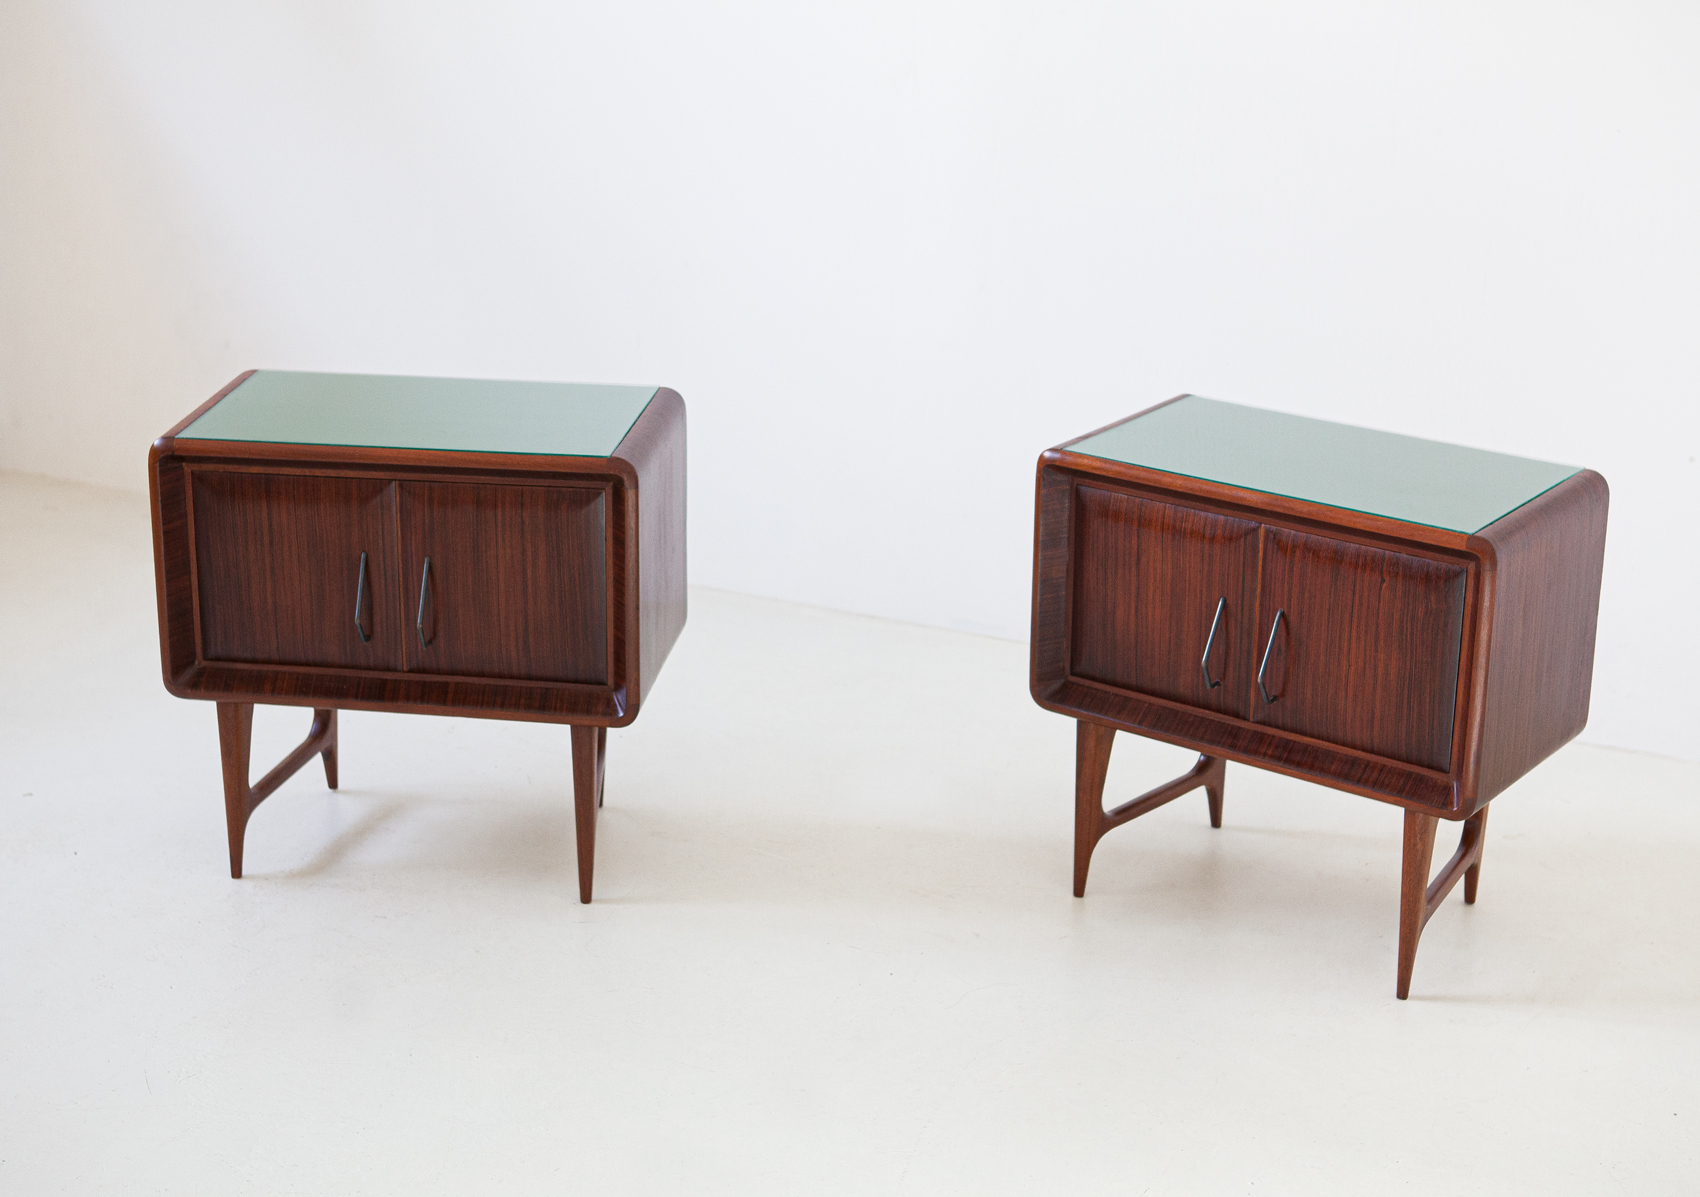 1950s-italian-rosewood-bedside-tables-with-green-glass-top-9-bt83